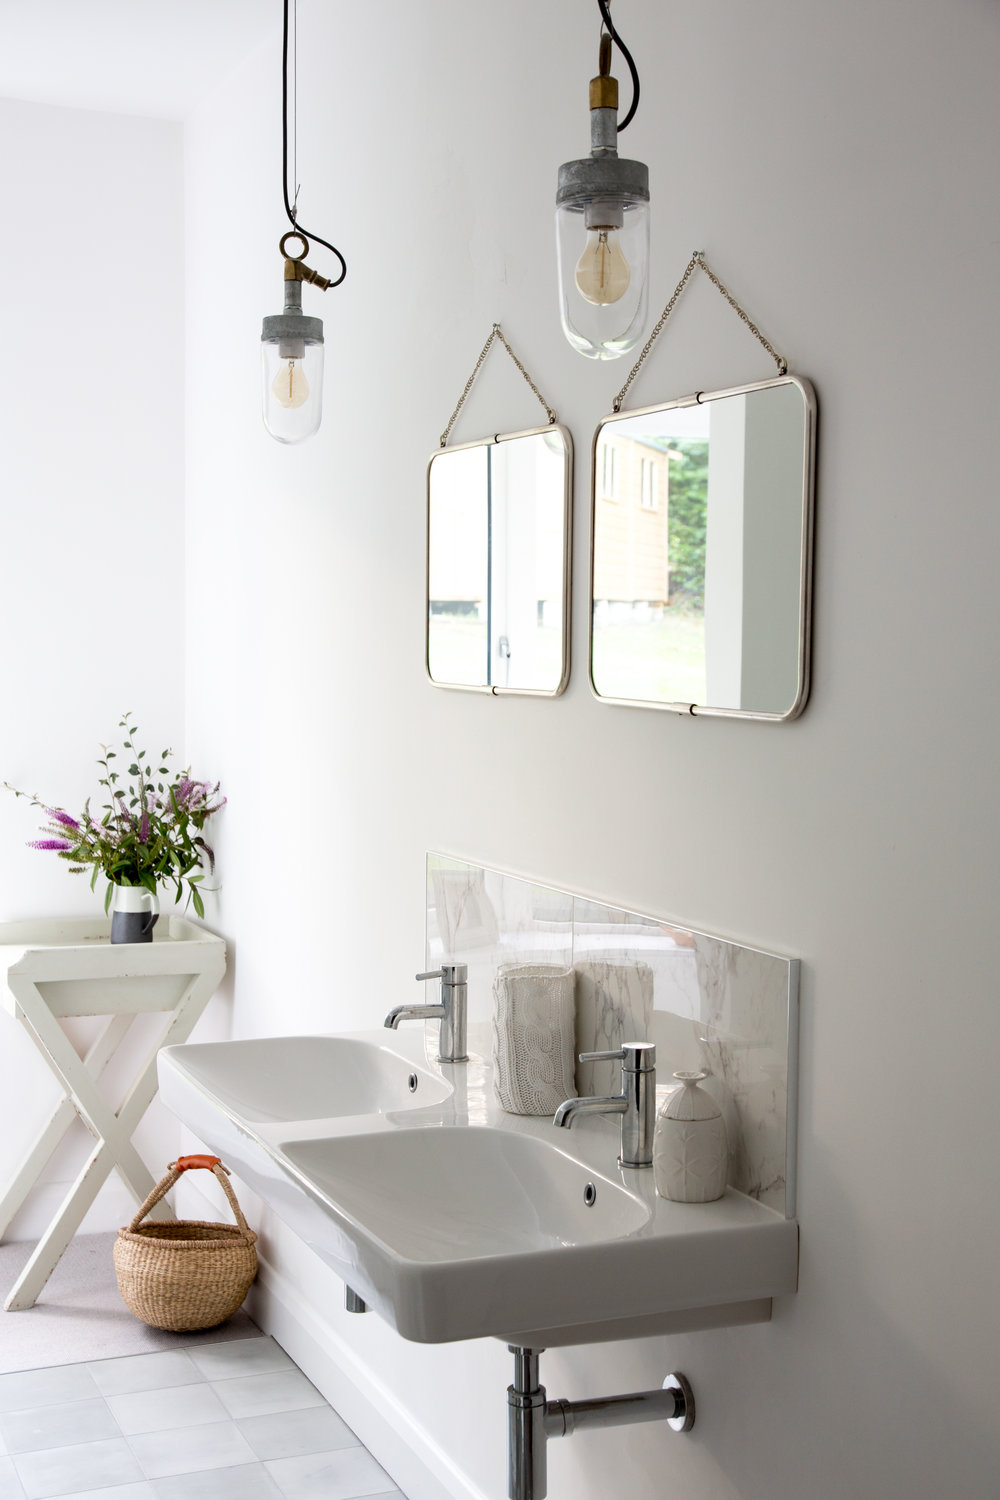 Lamb_Design_Paper_and_Moon_Emma_Lynch_Louise_Dockery_Scandi_French_Danish_homeware_Irish_business_interior_designer_vintage_mirror_bathroom.jpg